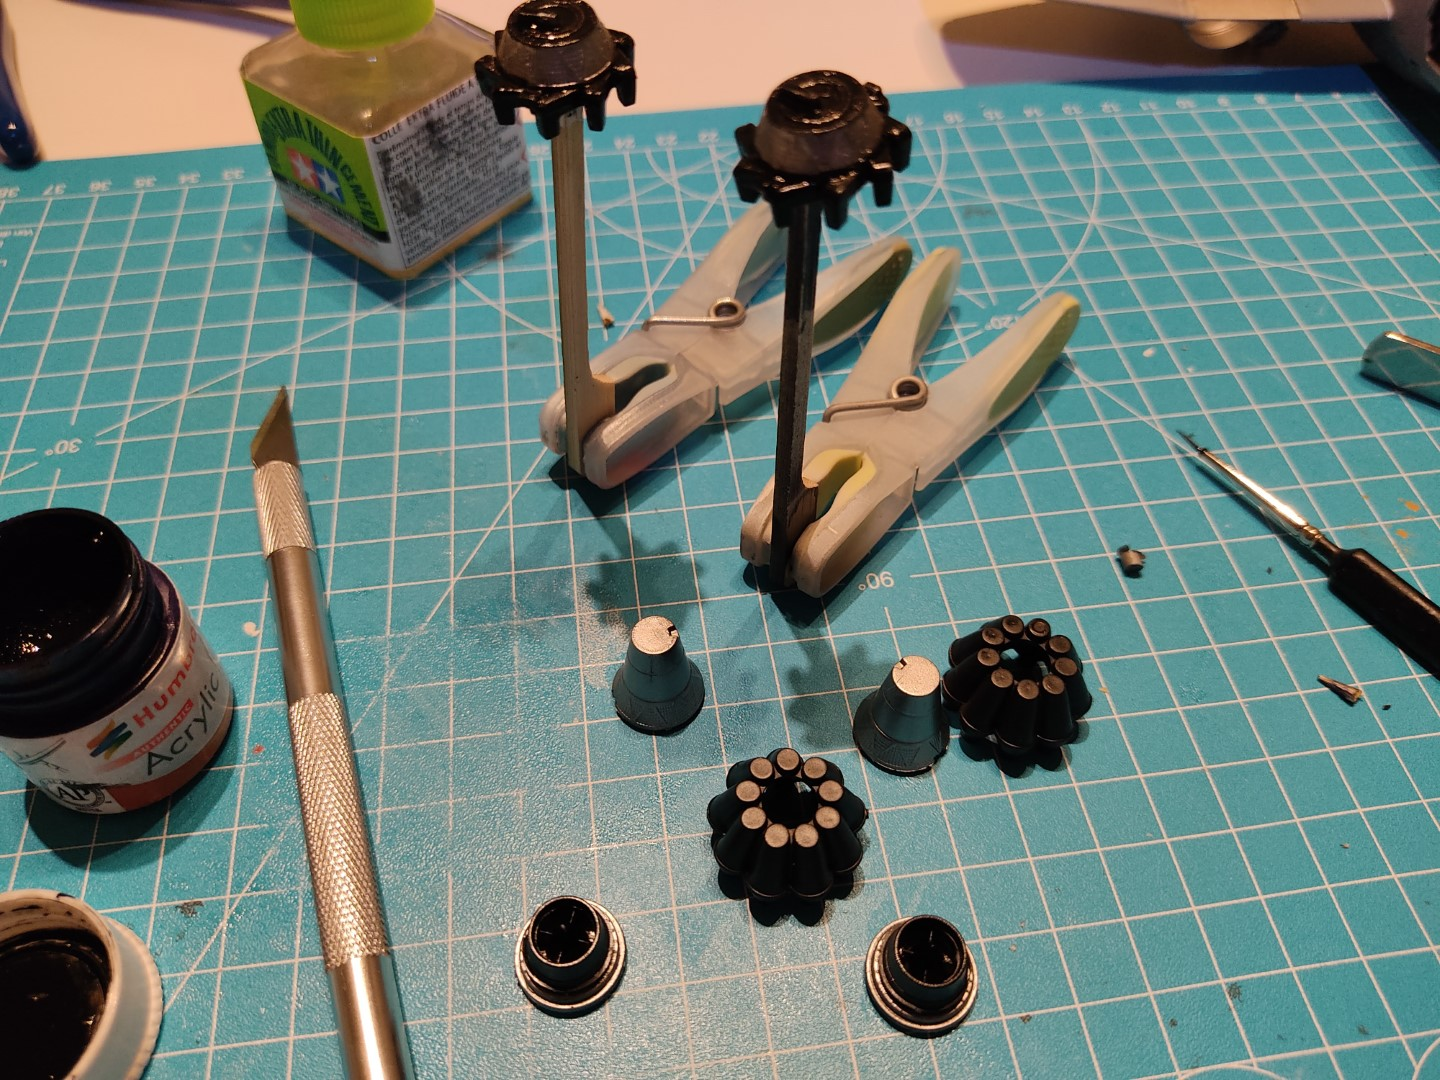 [Work-in-Progress] Airfix Gloster Meteor F.8 - The jet engines are slowly coming together.